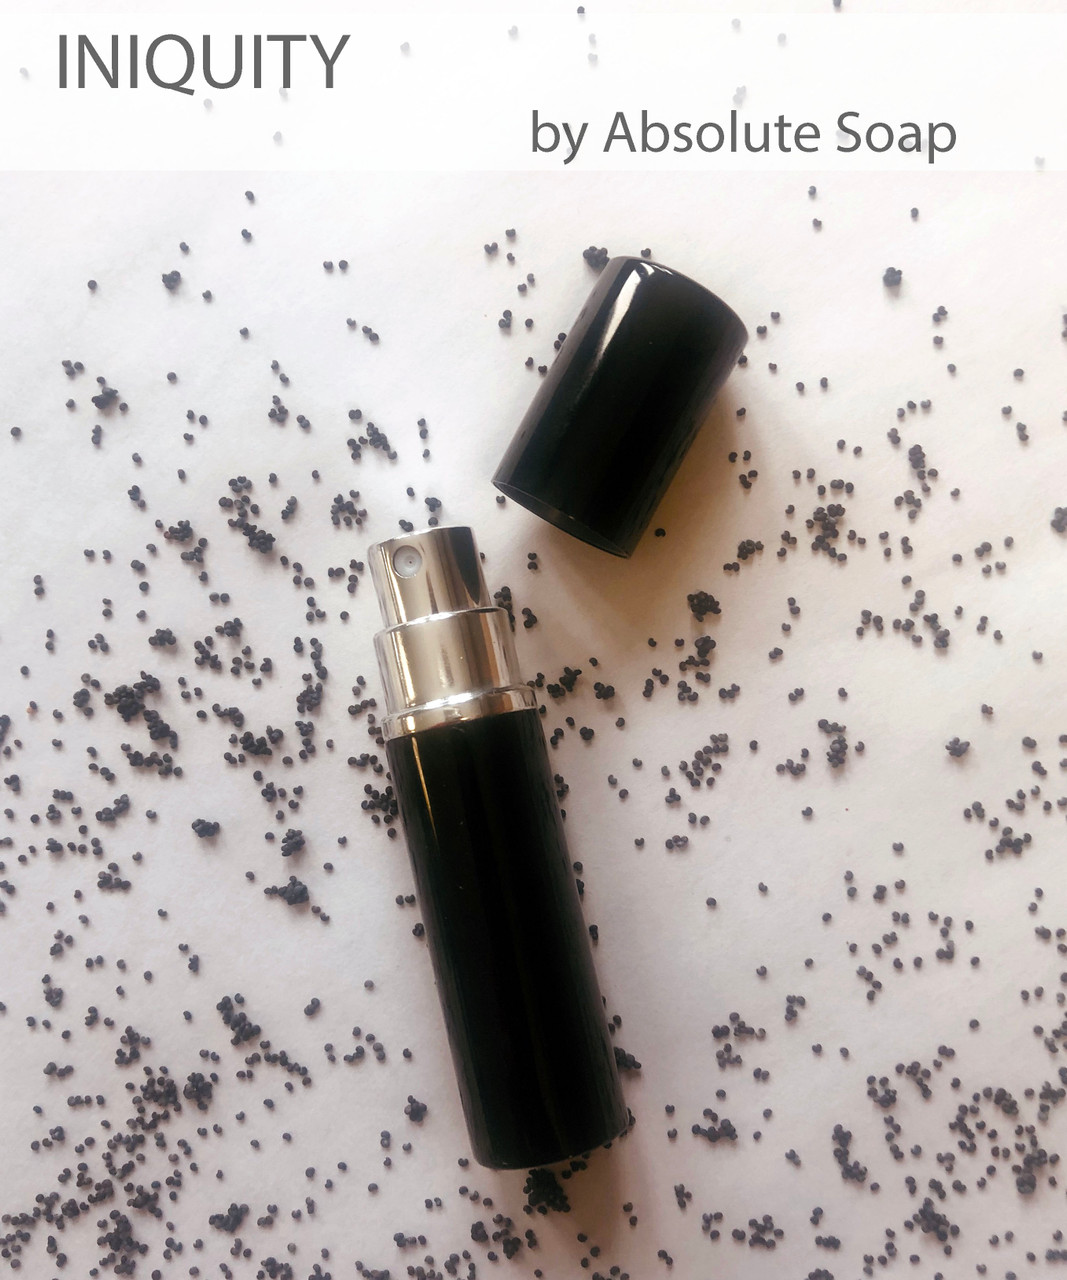 Iniquity Handcrafted Perfume | Absolute Soap